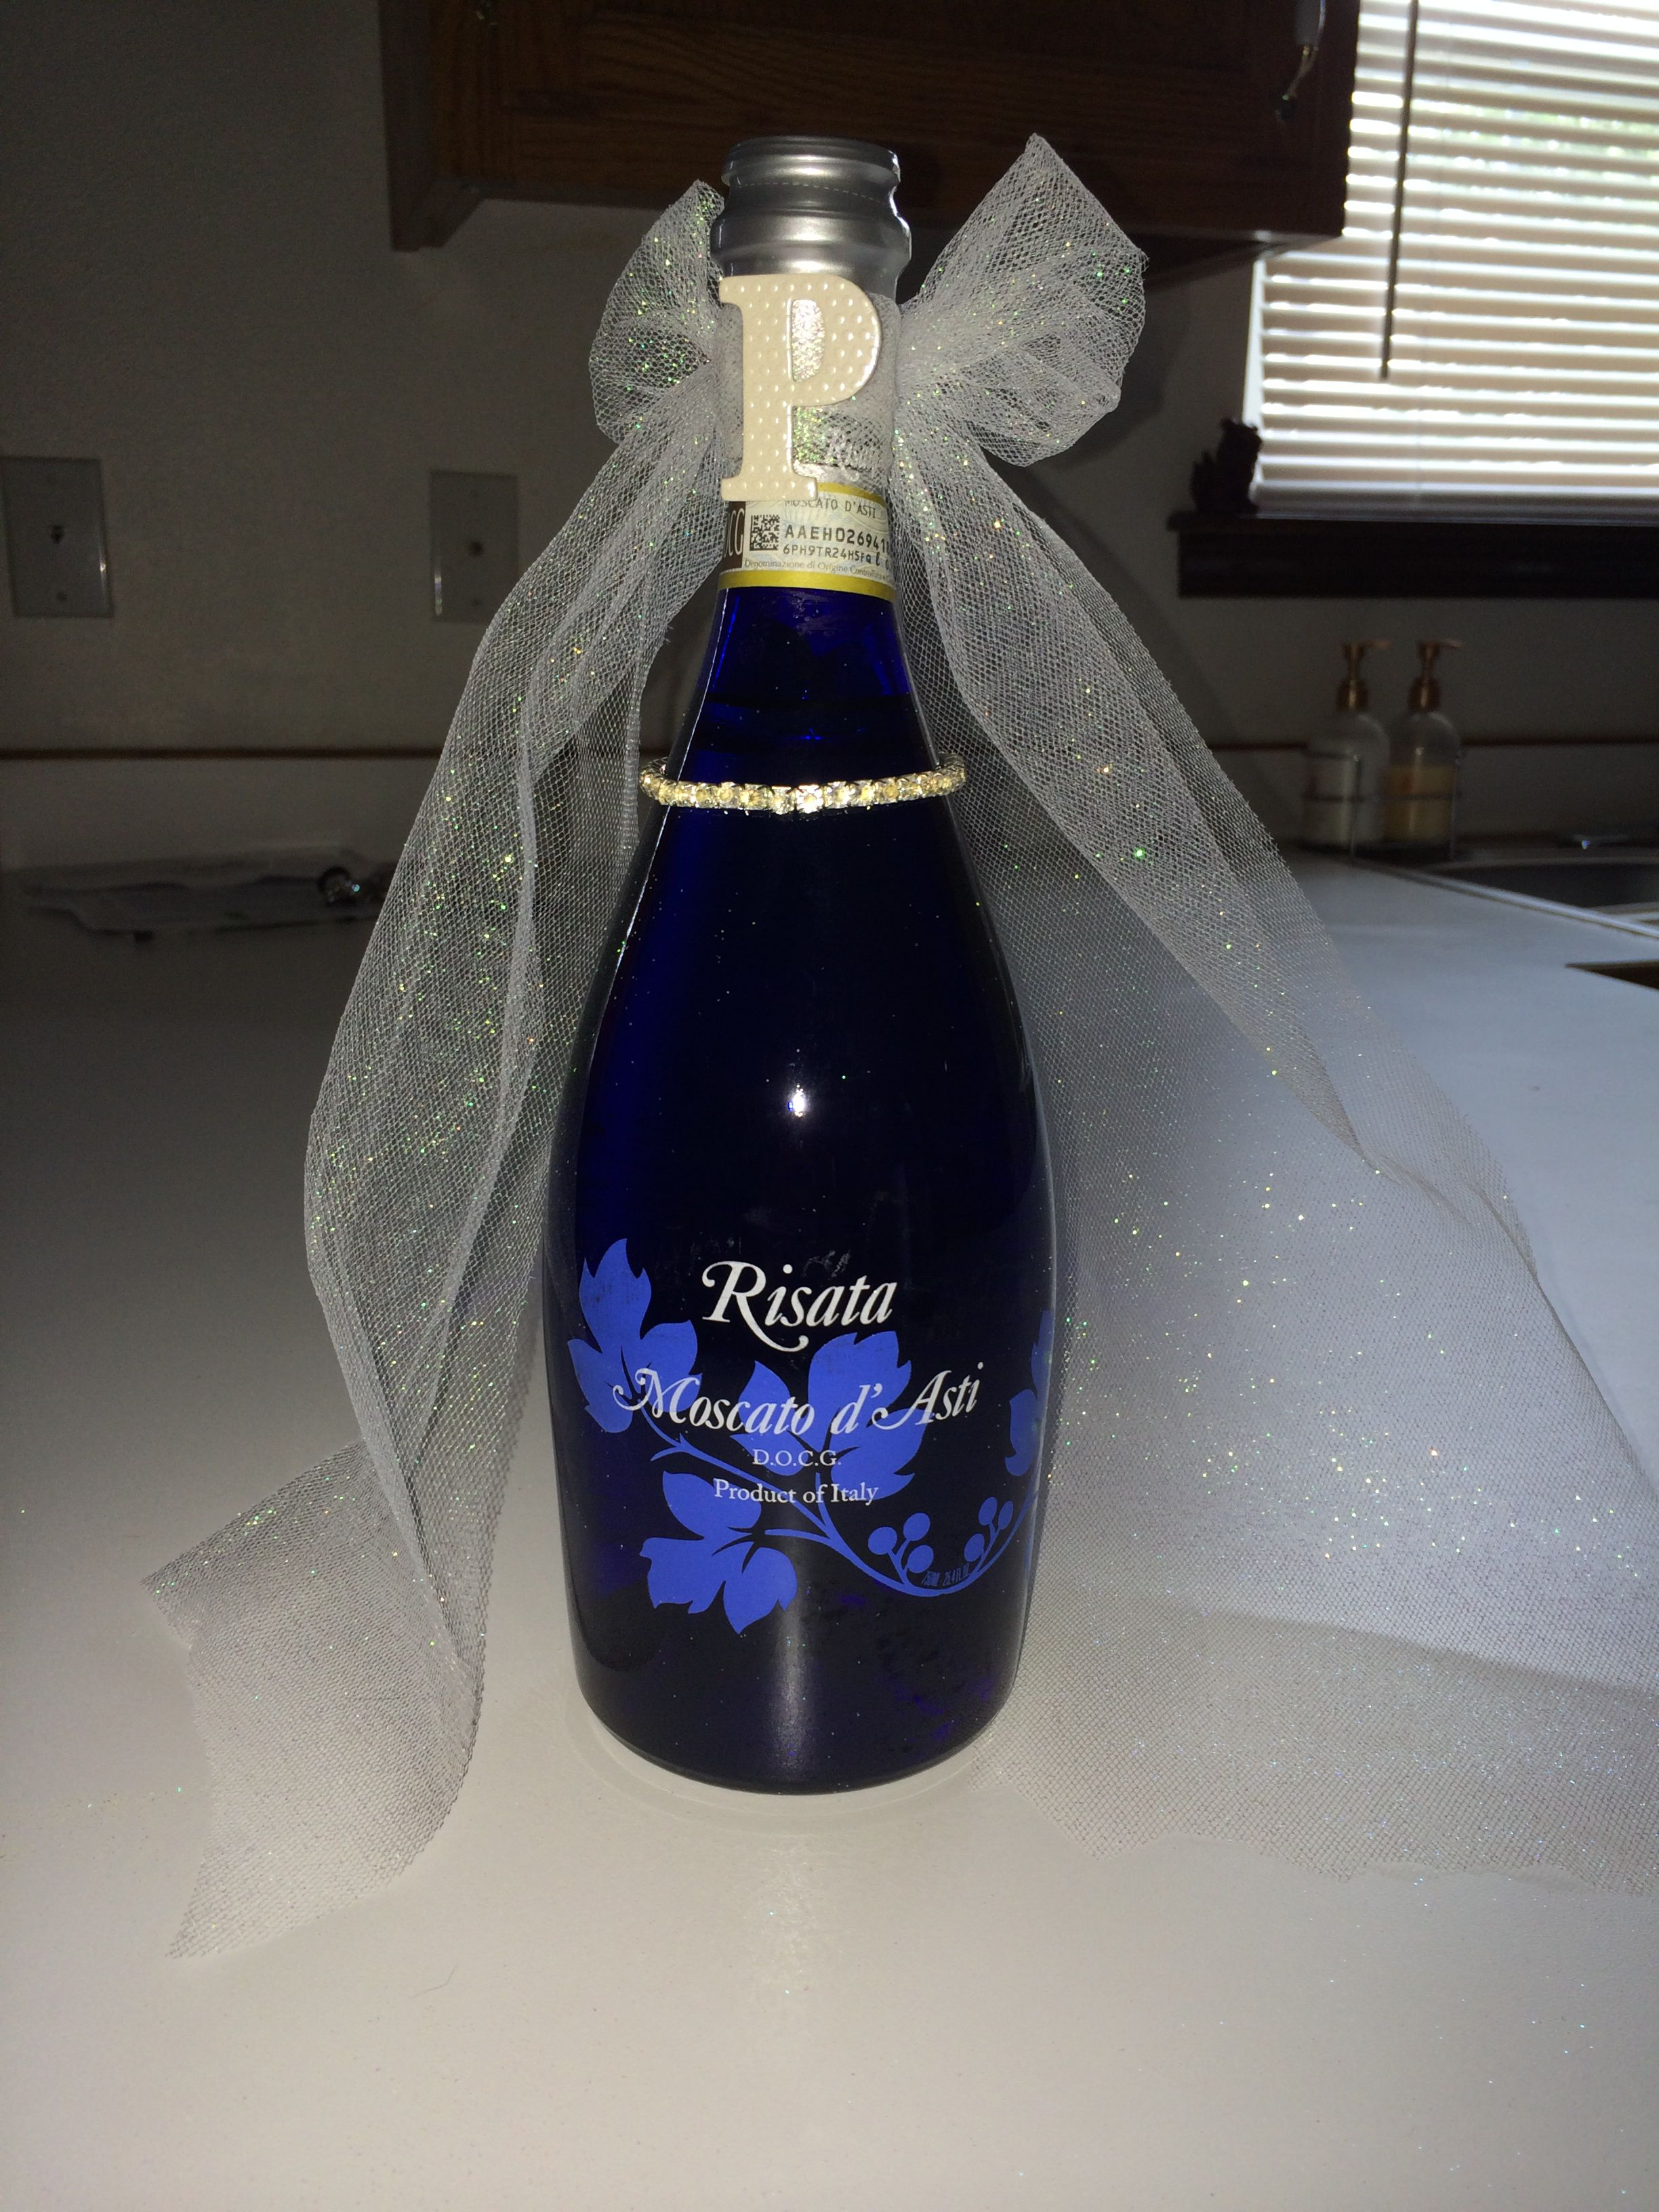 decorated bride wine bottle as wedding shower gift tied